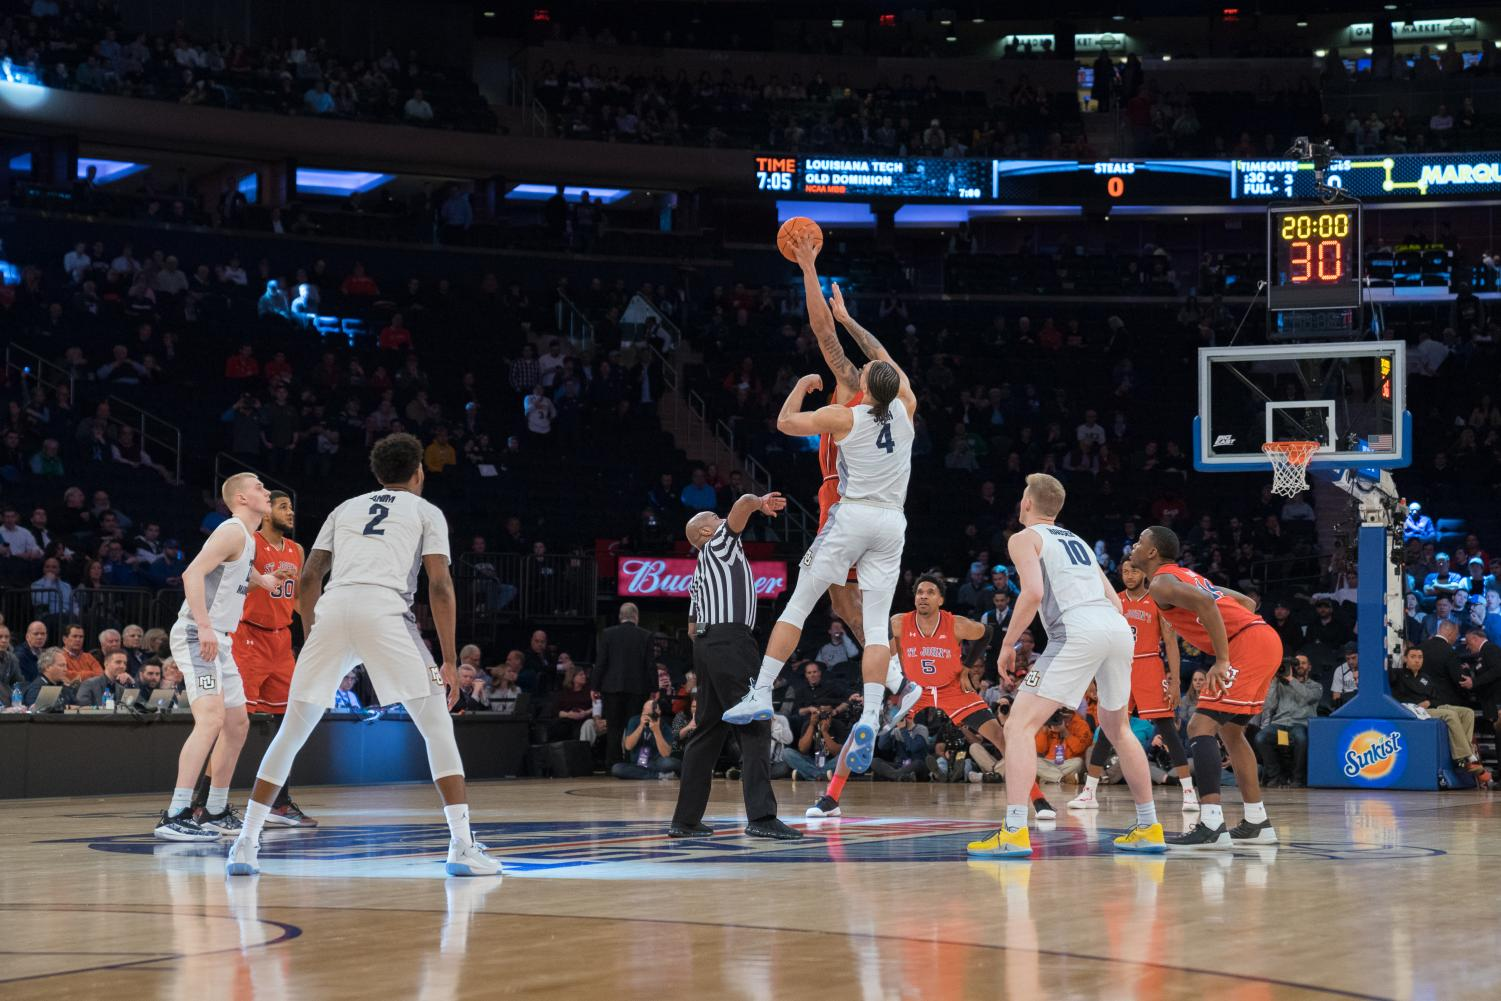 Marquette's then-sophomore center Theo John, center, tips off against St. John's in the 2019 BIG EAST Tournament.